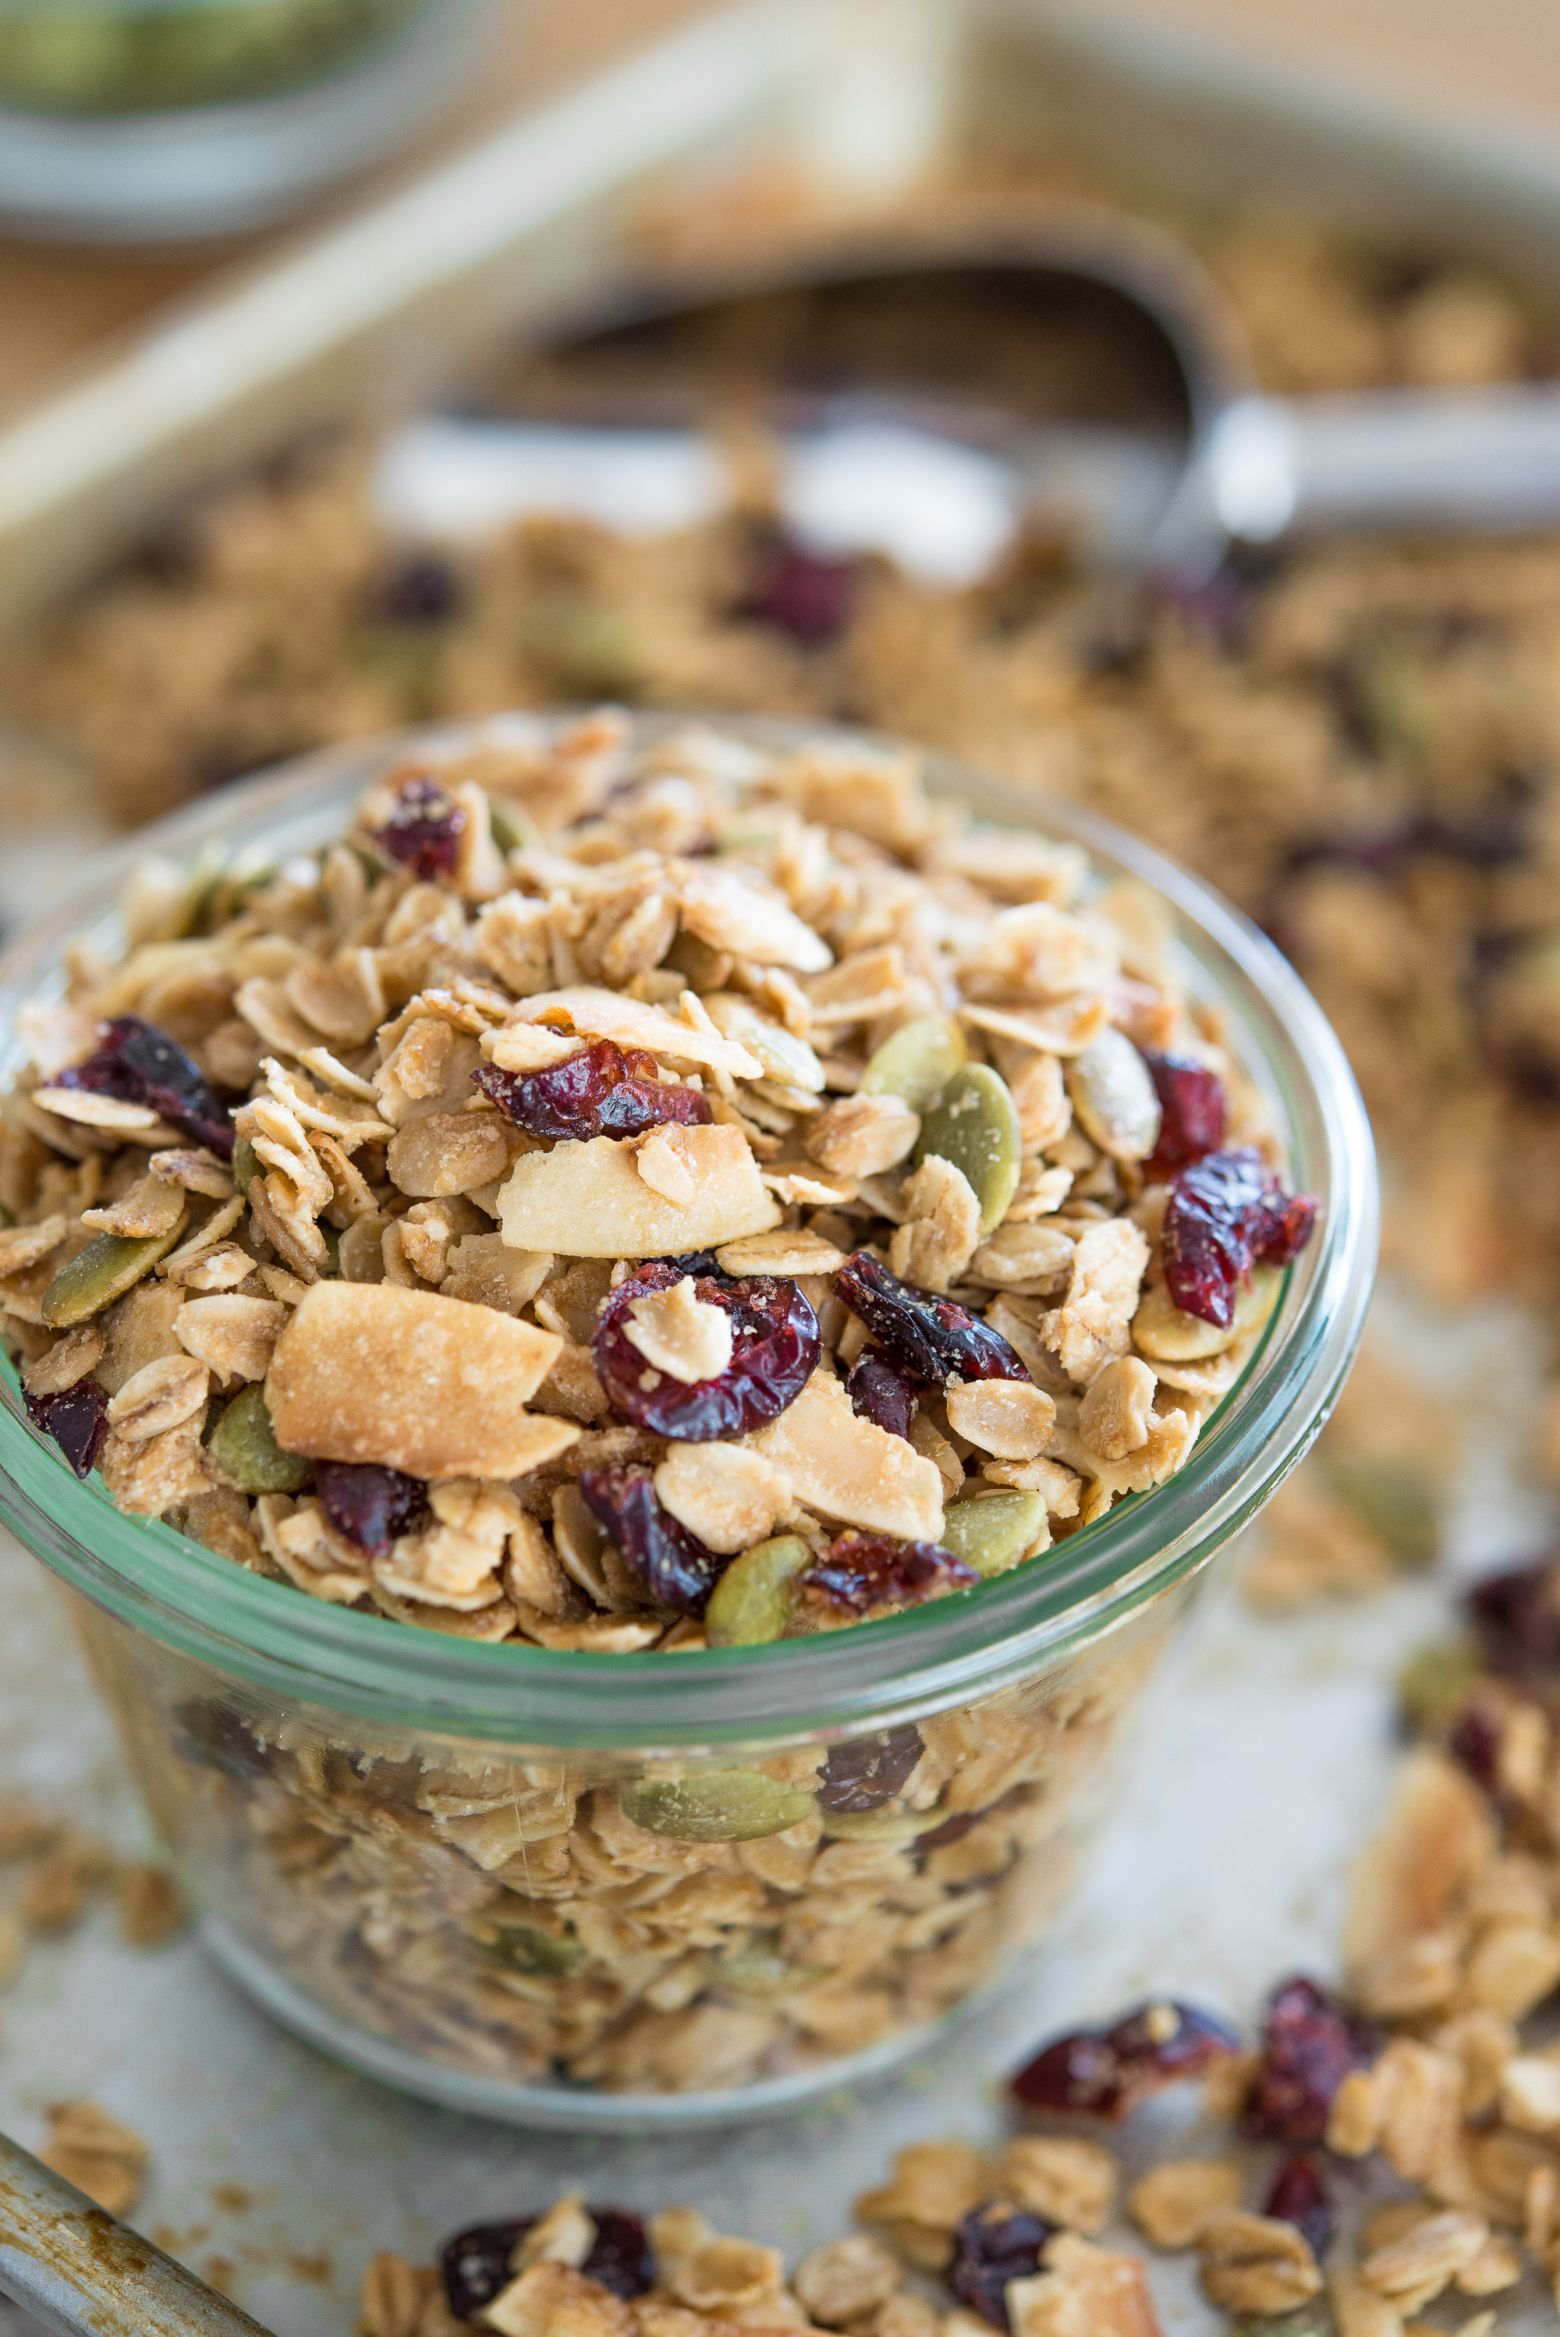 How To Make Magnificent Granola Recipe Homemade Granola Food Recipes